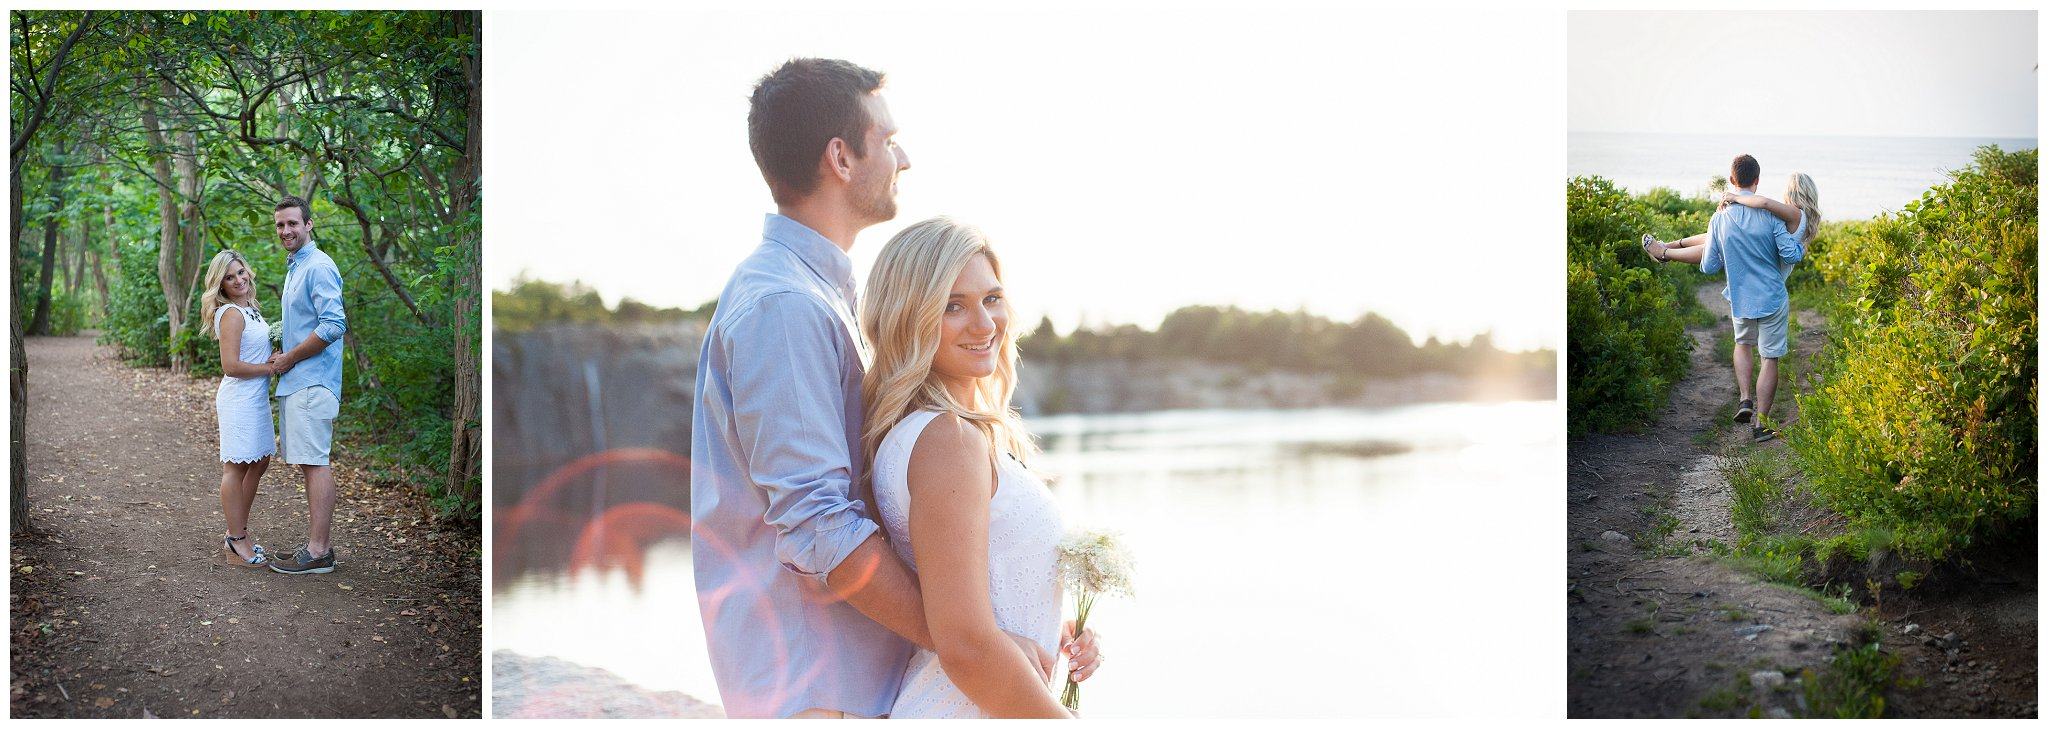 Halibut Point Rockport MA engagement session photographer sunset dreamy